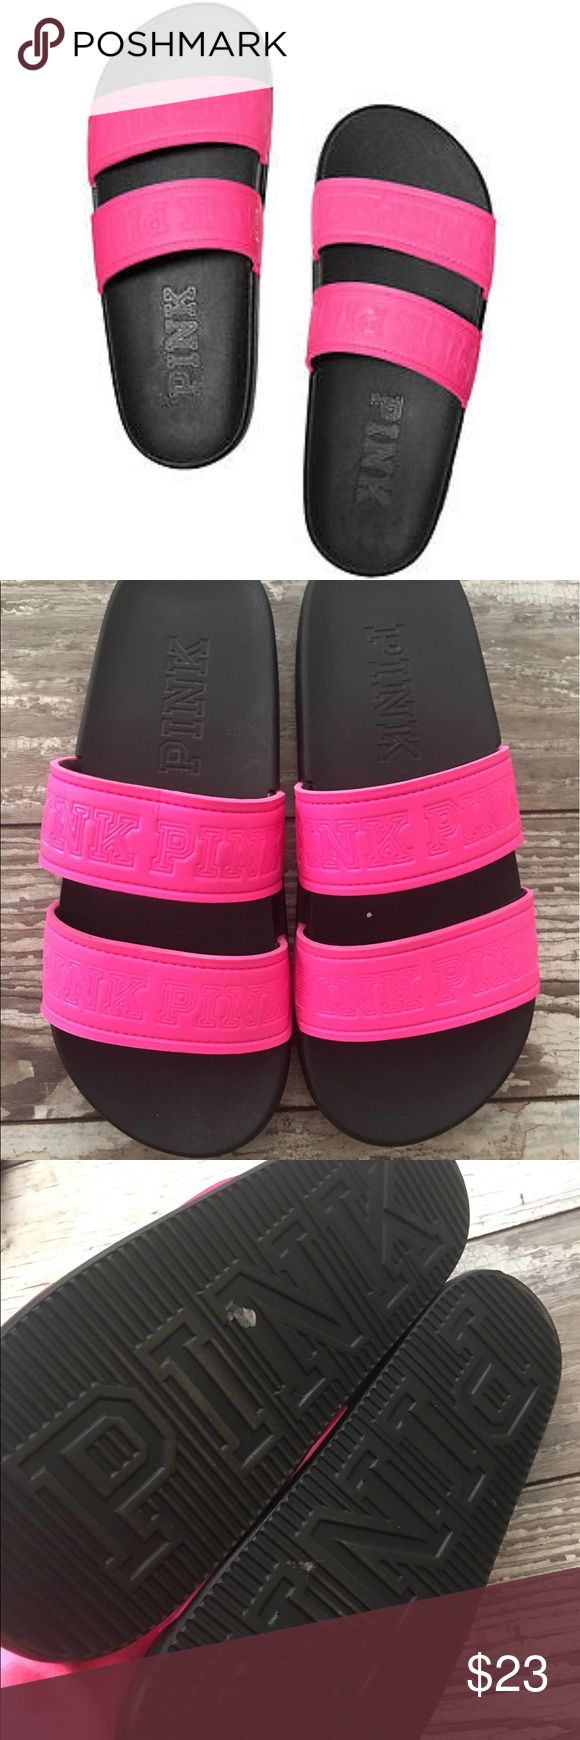 VS pink slides sandals small 5 6 cute beach Victoria's Secret pink hot pink 2 straps slides sandals. Size small 5/6 euc PINK Victoria's Secret Shoes Sandals